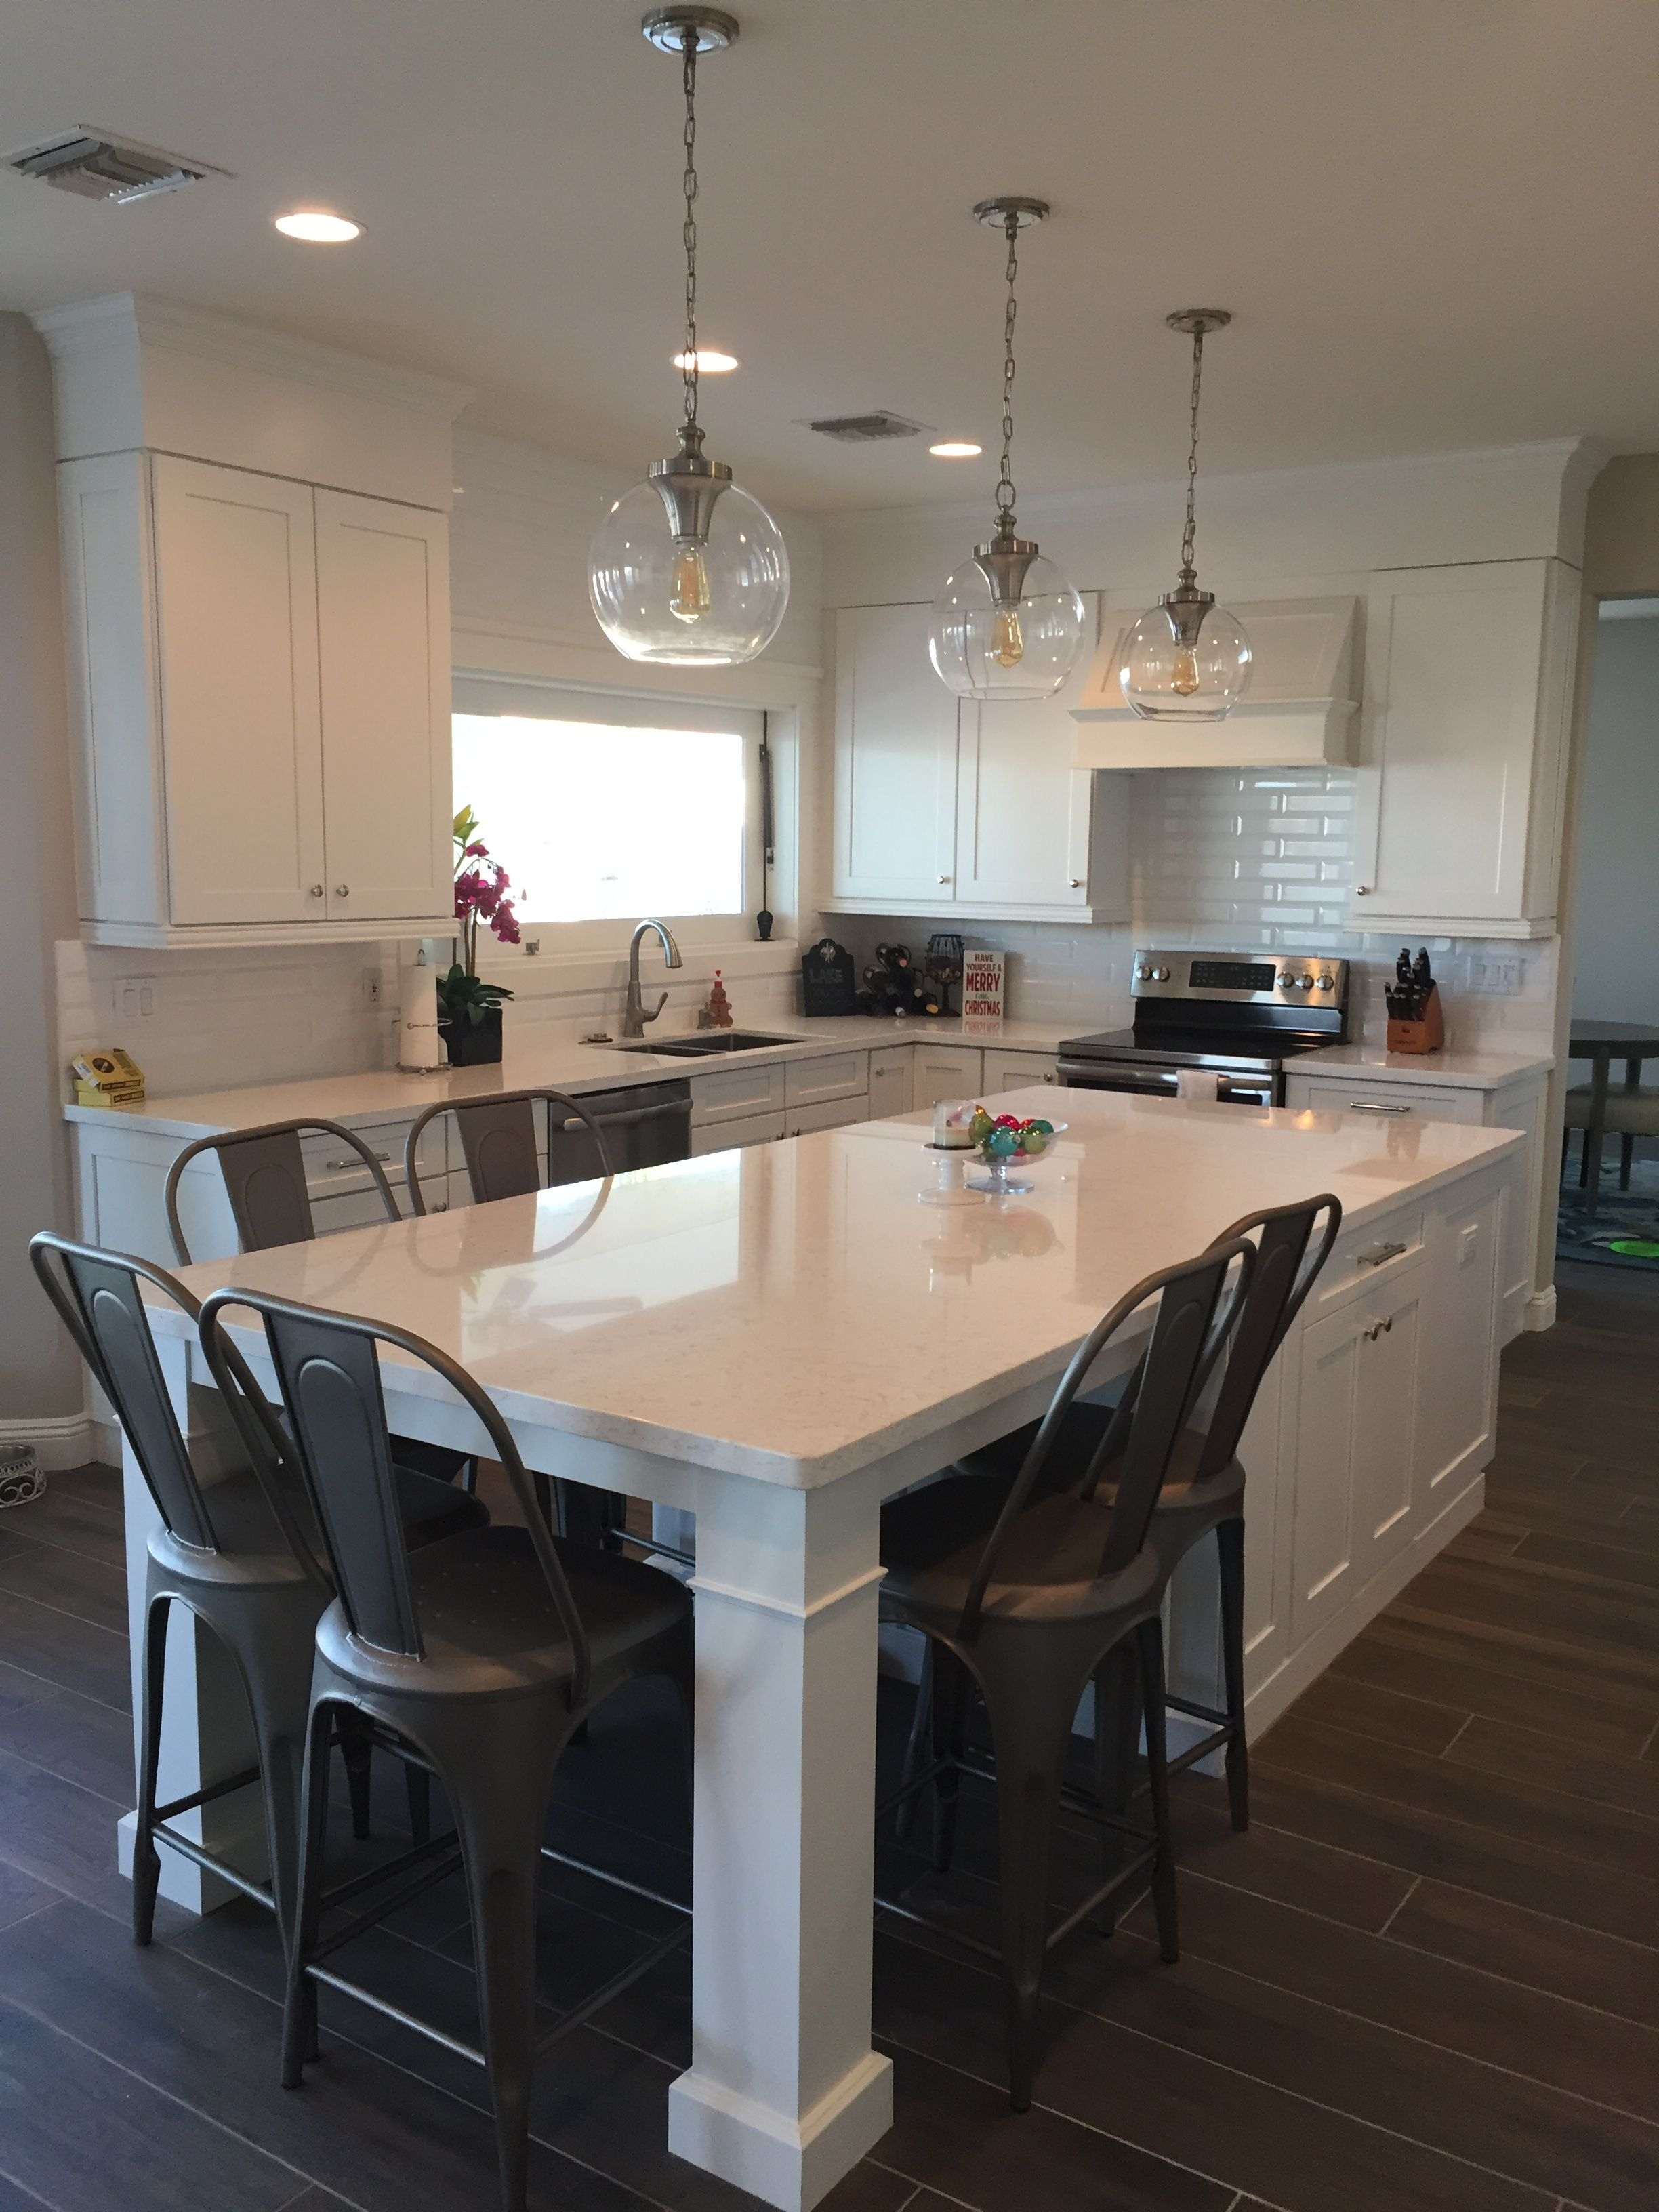 Island Tables For Kitchen Refurbishing Cabinets White Shaker Waypoint Designed By Nathan Hoffman Wonder If Discover Ideas About Dining Table